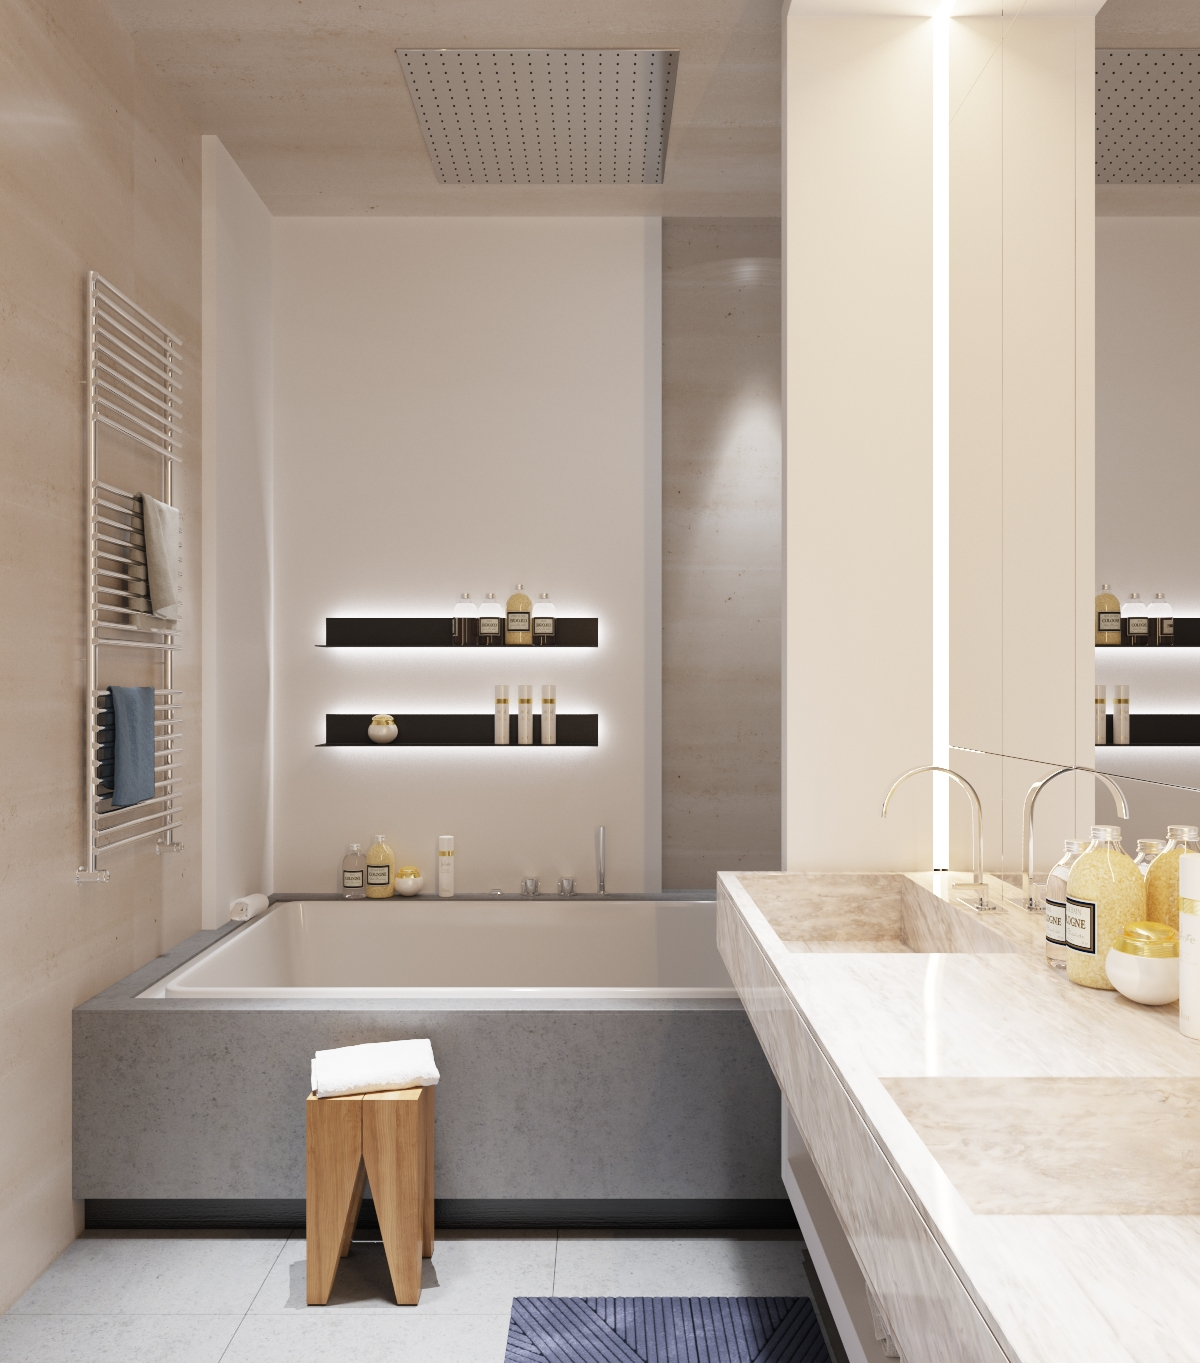 Minimalist Bathroom Design Pinterest: Small Minimalist Bathroom Designs Decorated With Variety